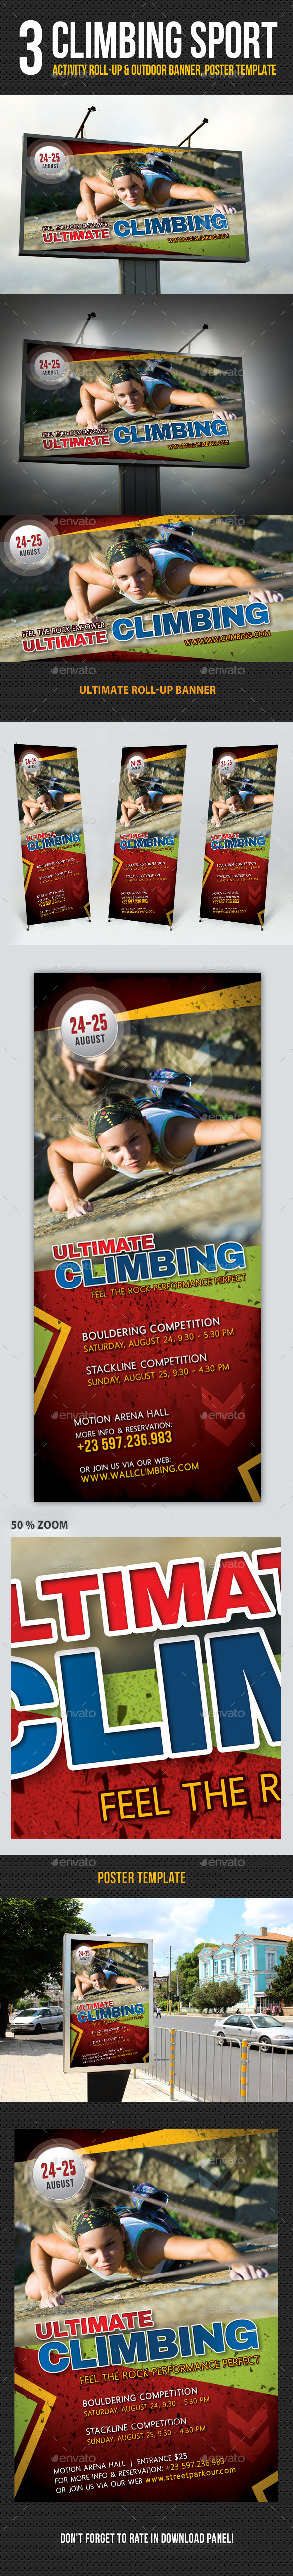 3 in 1 Climbing Sport Activity Banner Bundle - Signage Print Templates